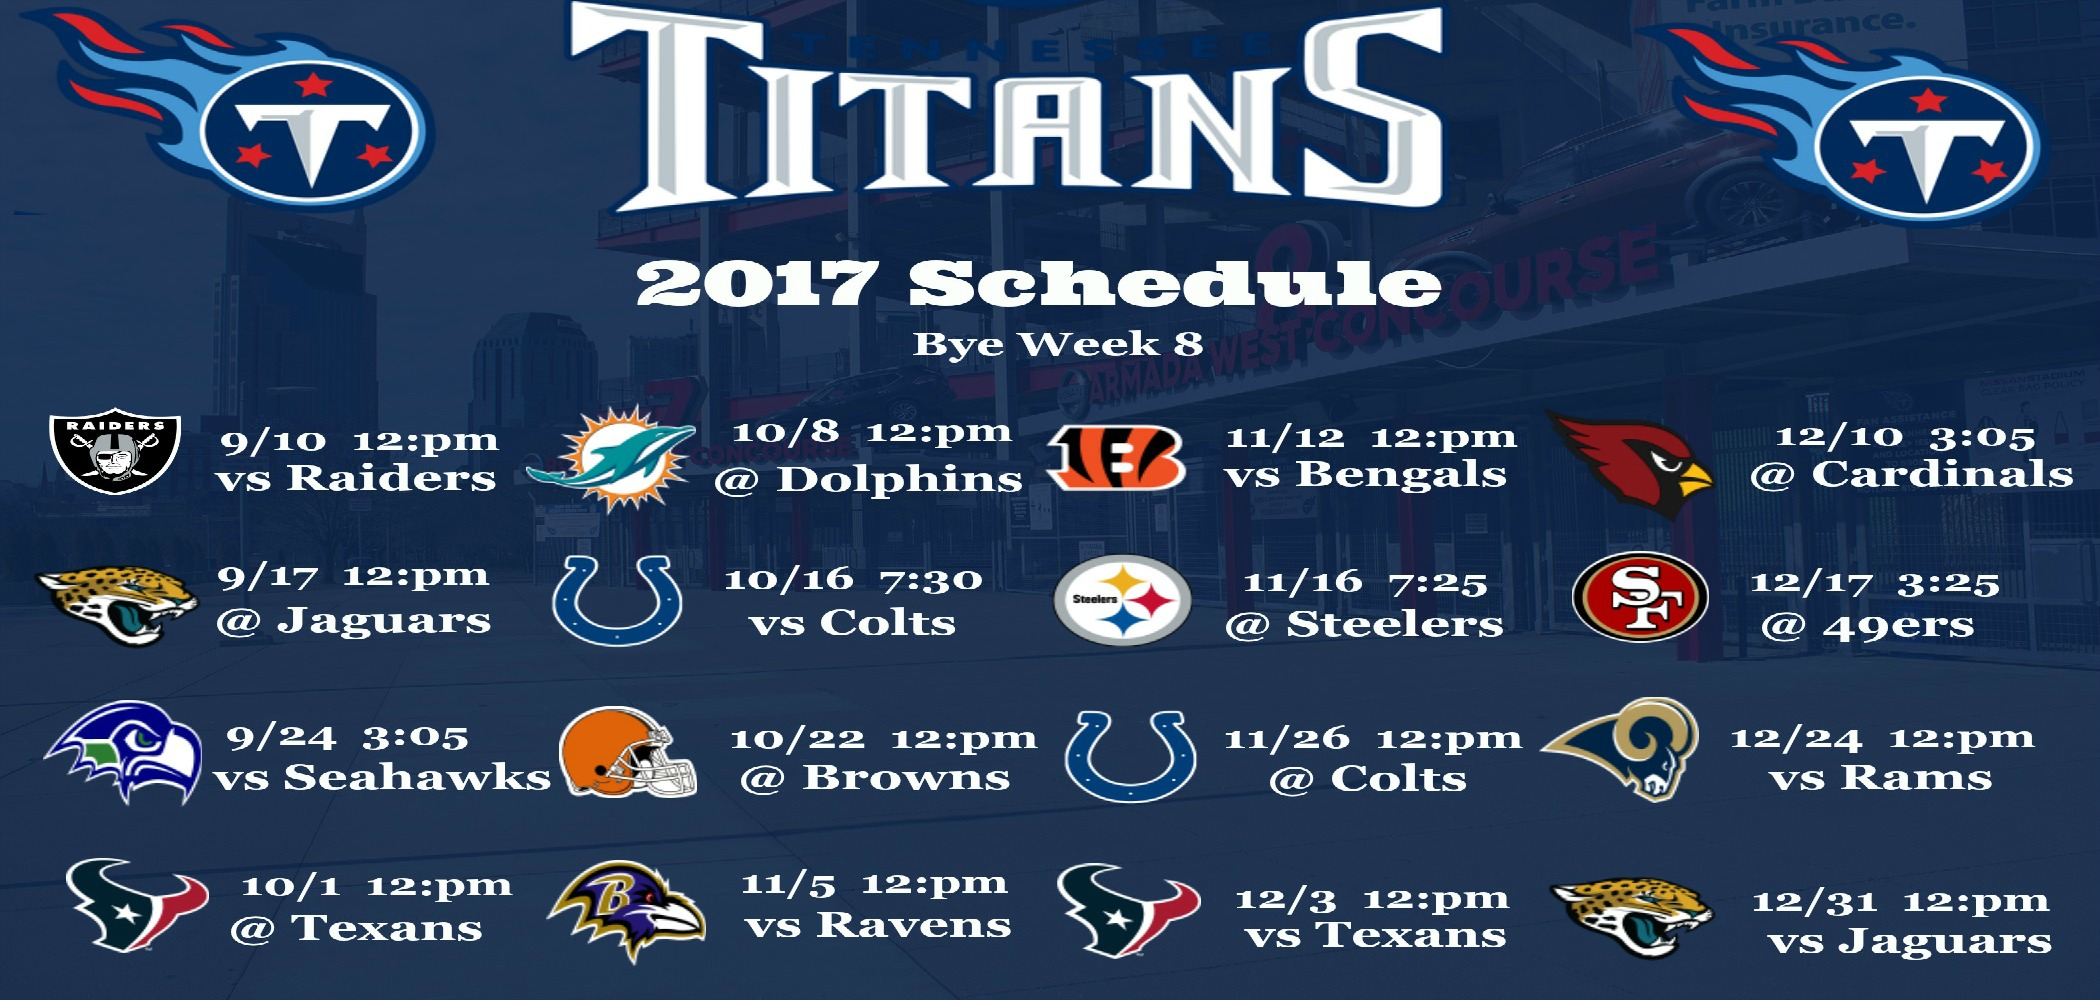 Tennessee Titans 2017 Schedule Wallpaper 1000